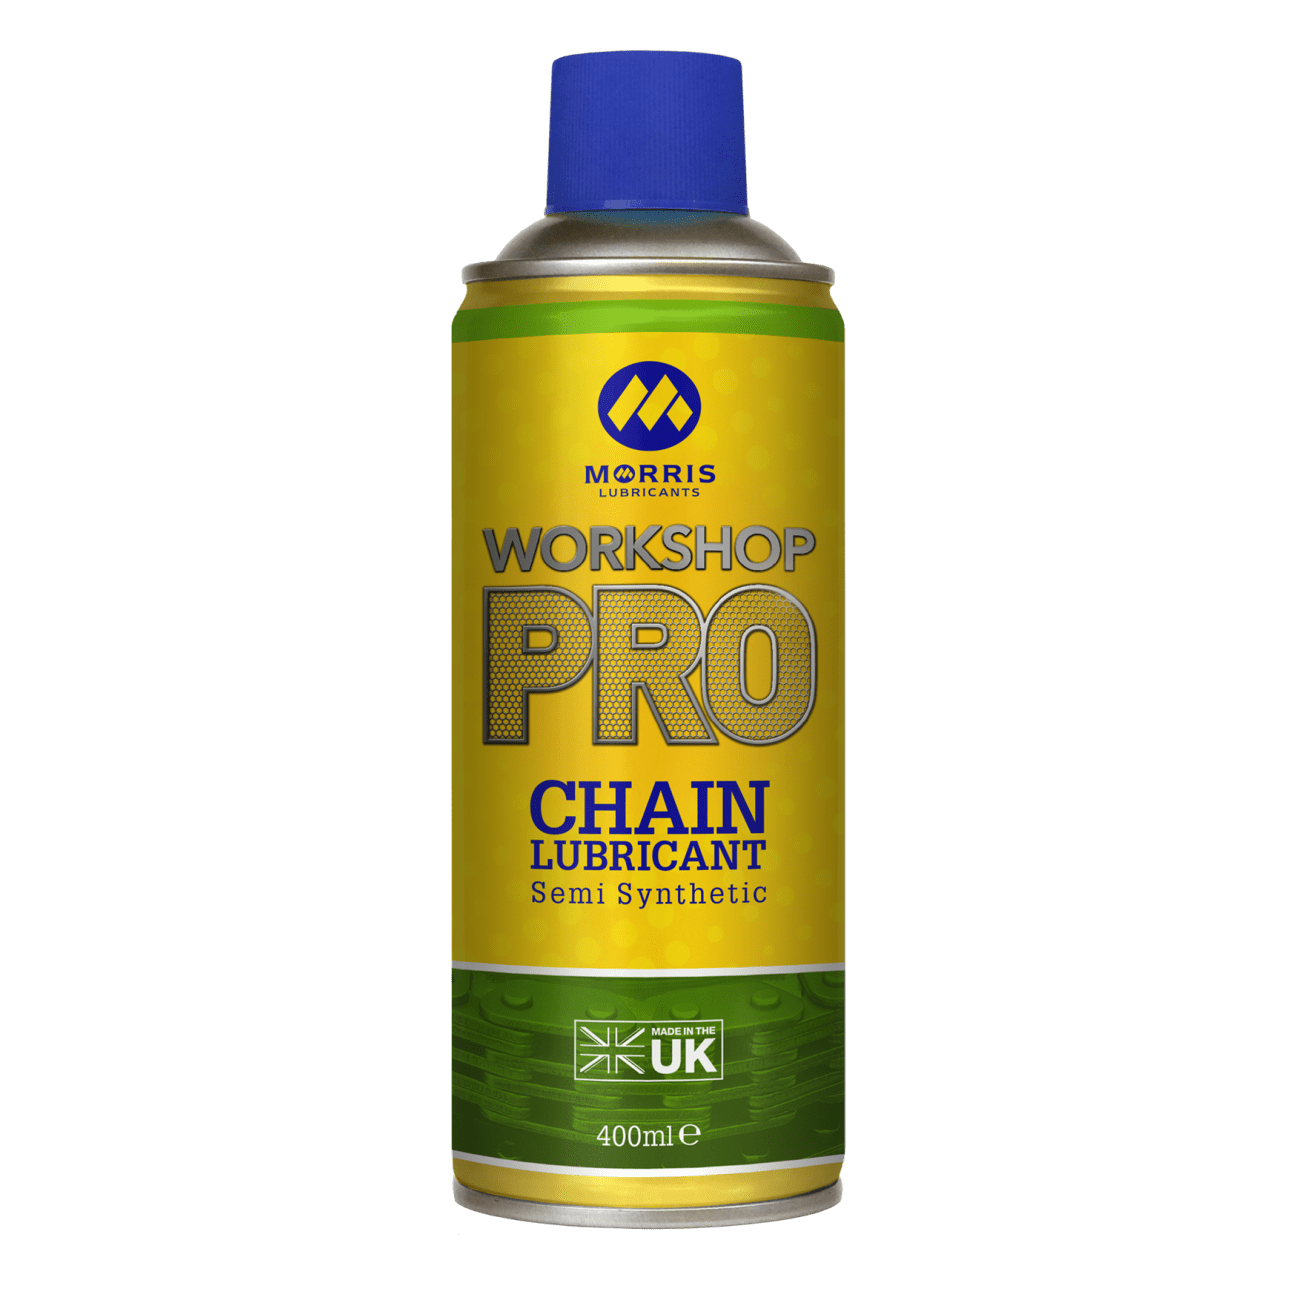 Workshop Pro Chain Lubricant Semi Synthetic (Formerly Croma Aerosol)